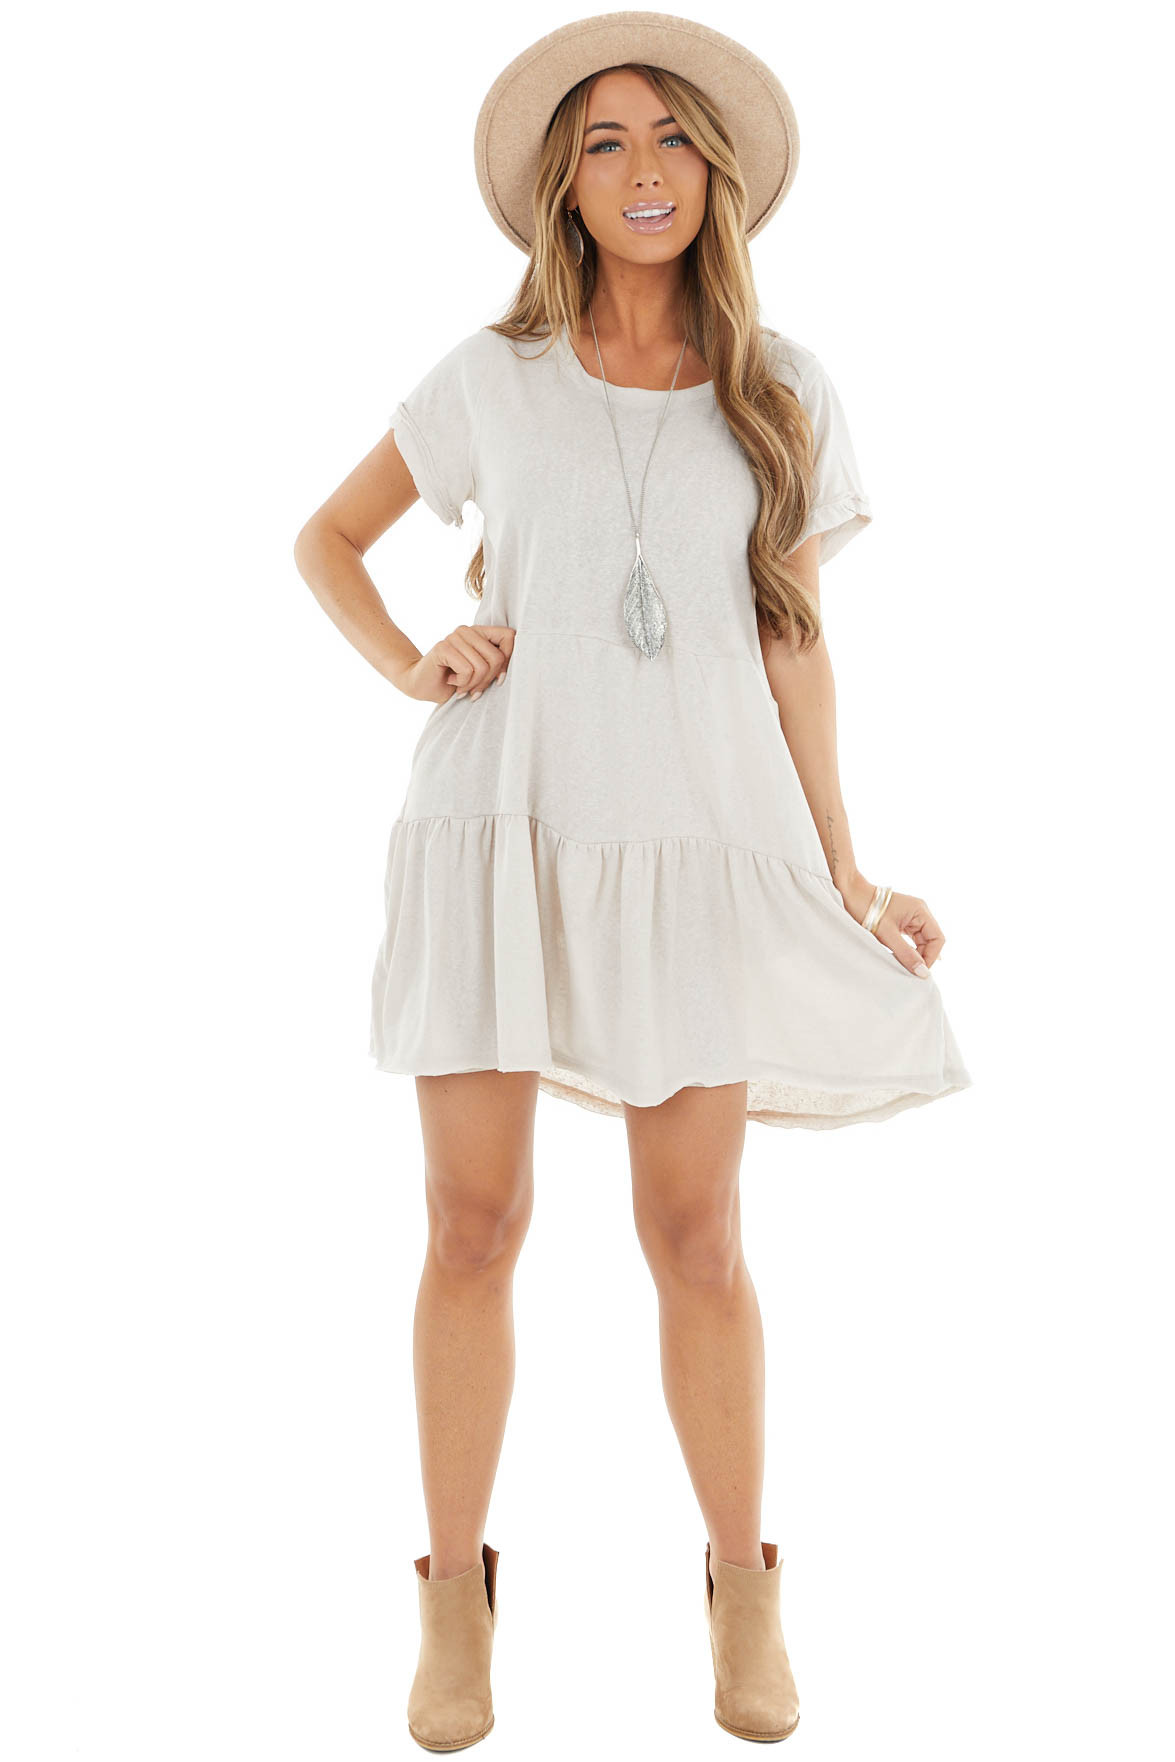 Oatmeal Baby Doll Tiered Dress with Raw Edge Details